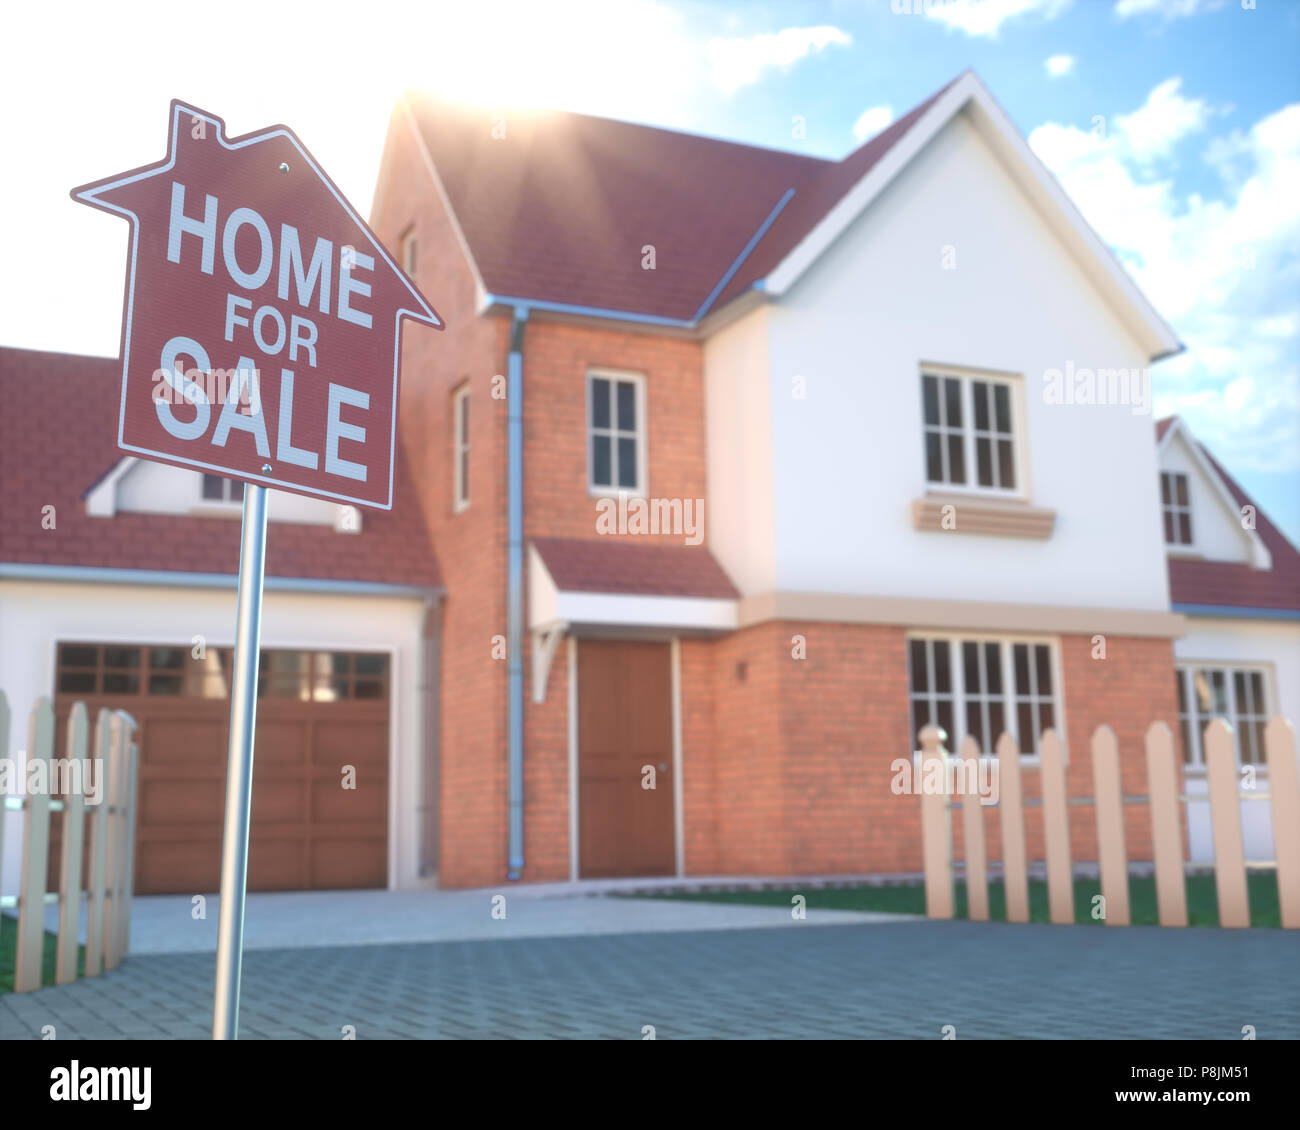 Home for sale, real estate sign in front of beautiful house with beam of sunlight coming from the background. Home business and finance concept. - Stock Image